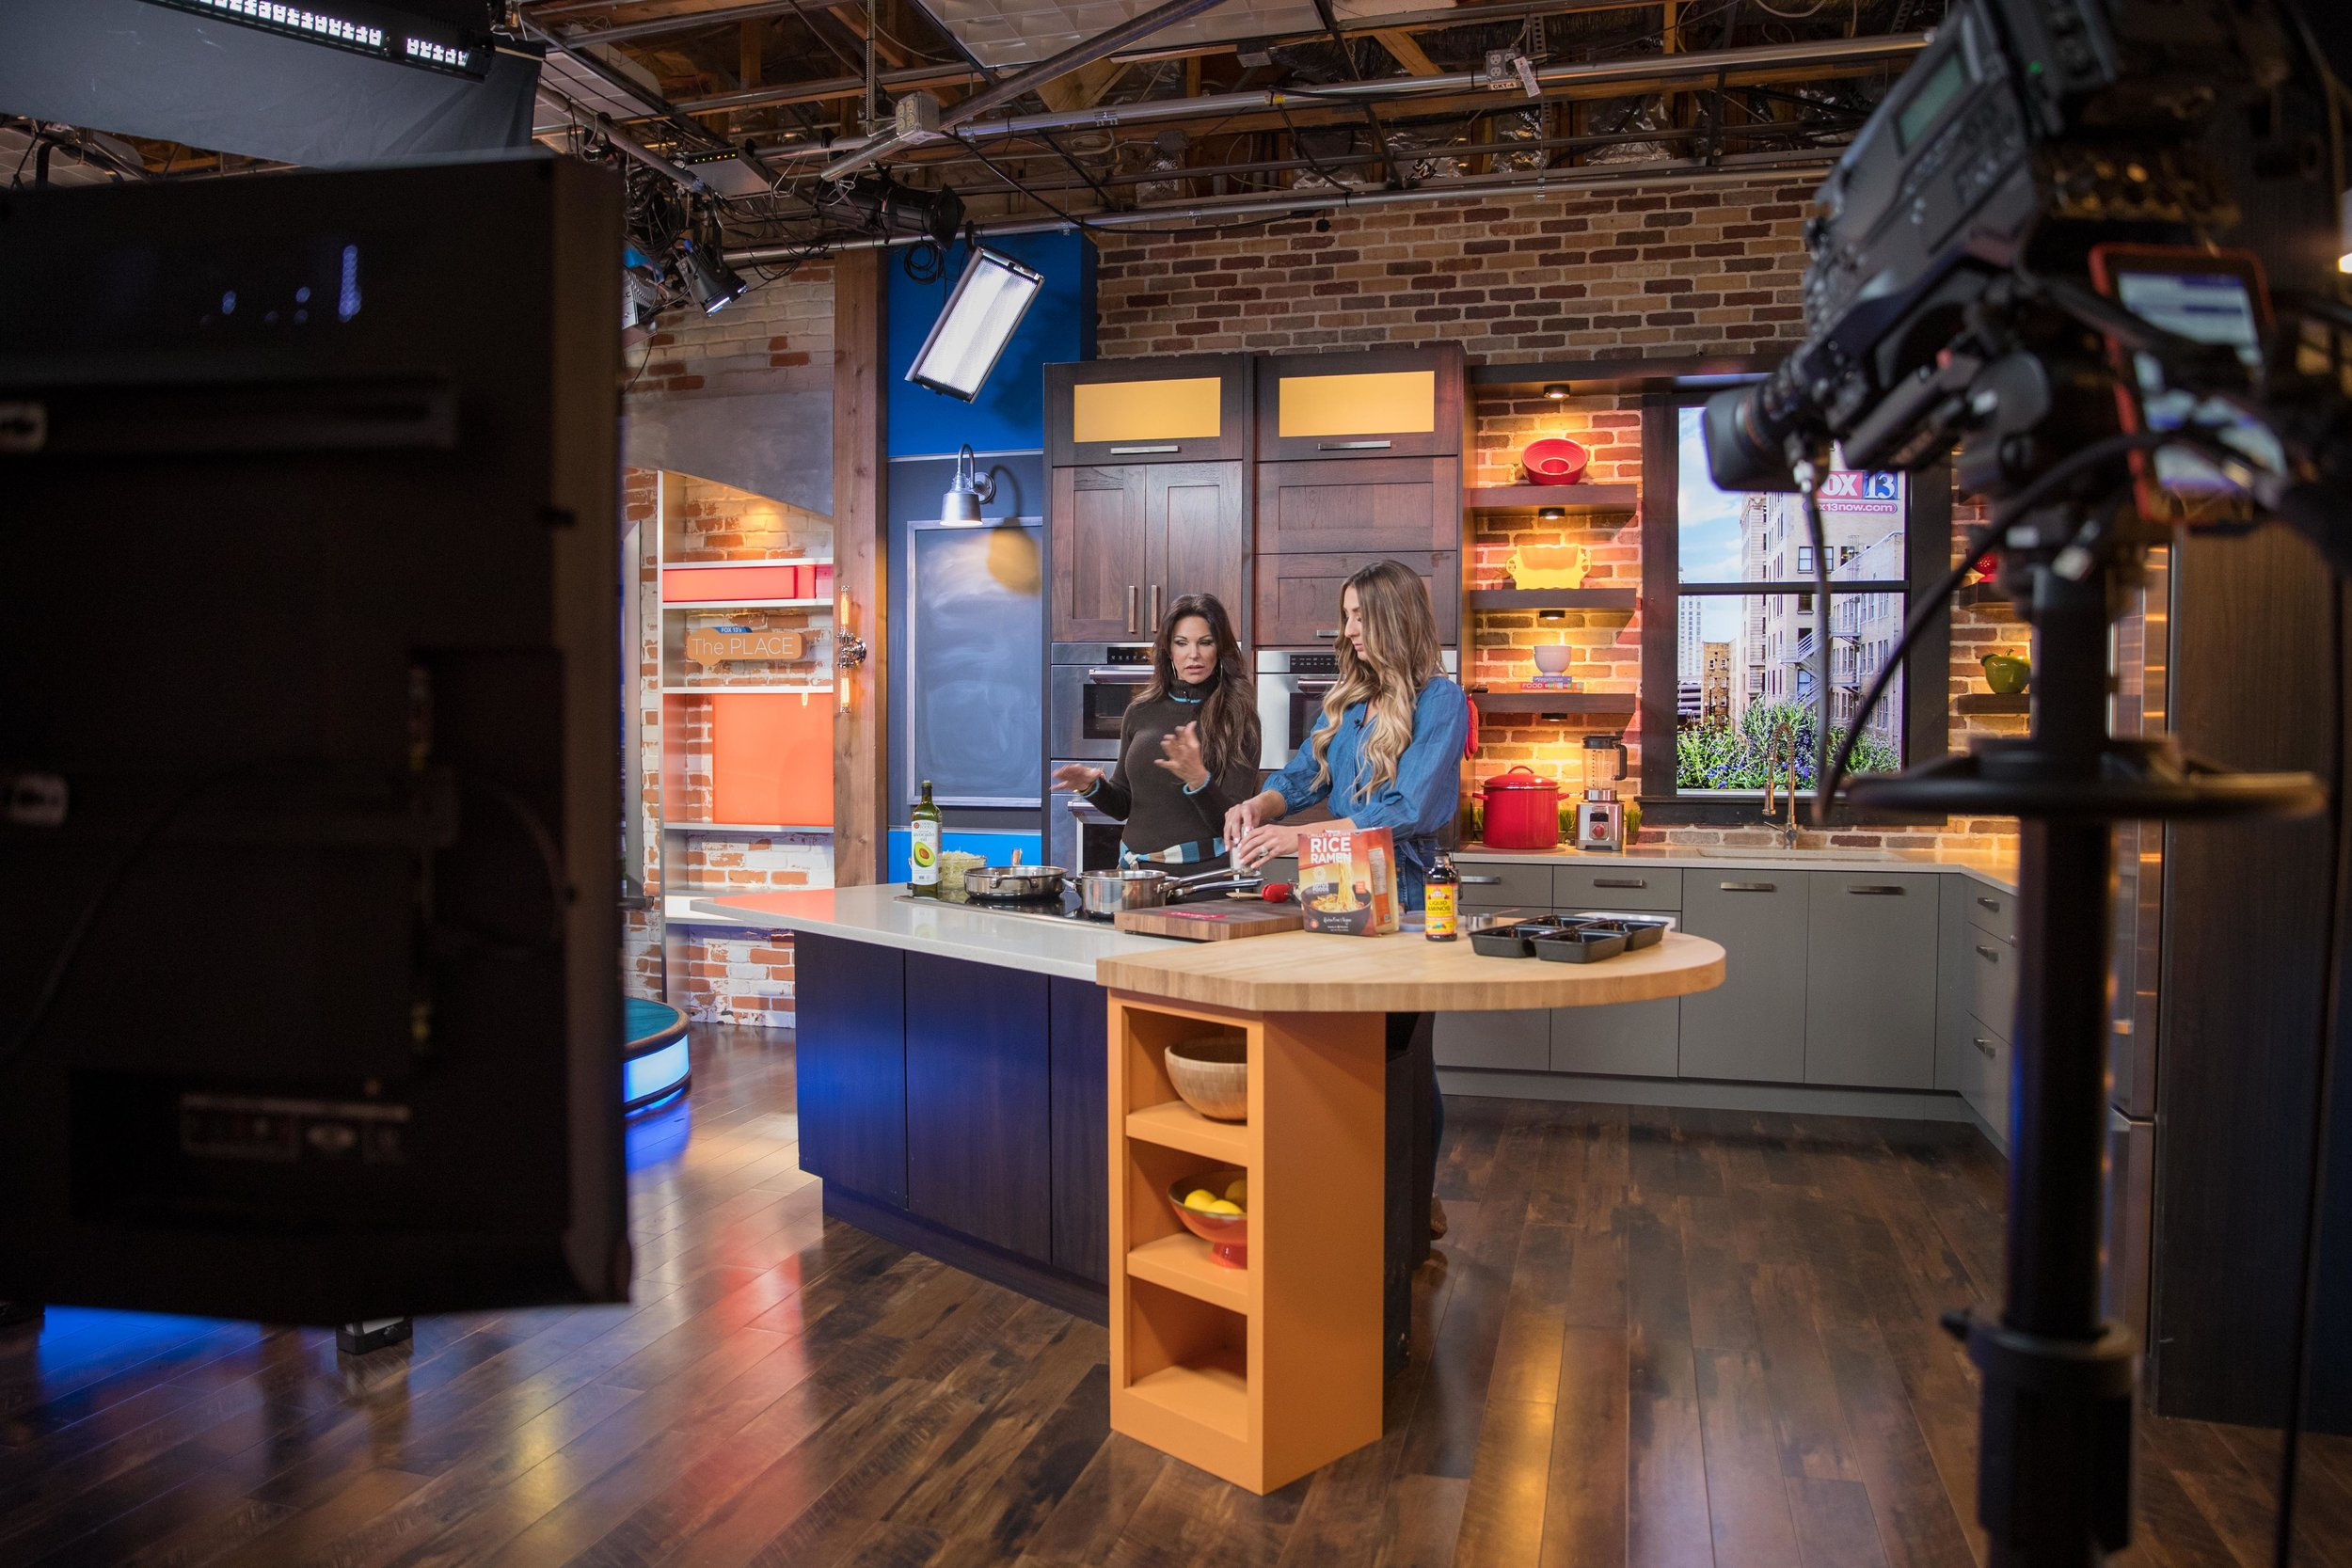 Gretchen and I live on Fox 13! - Gretchen introduced me and we began to cook/re-heat the healthy ramen meal.